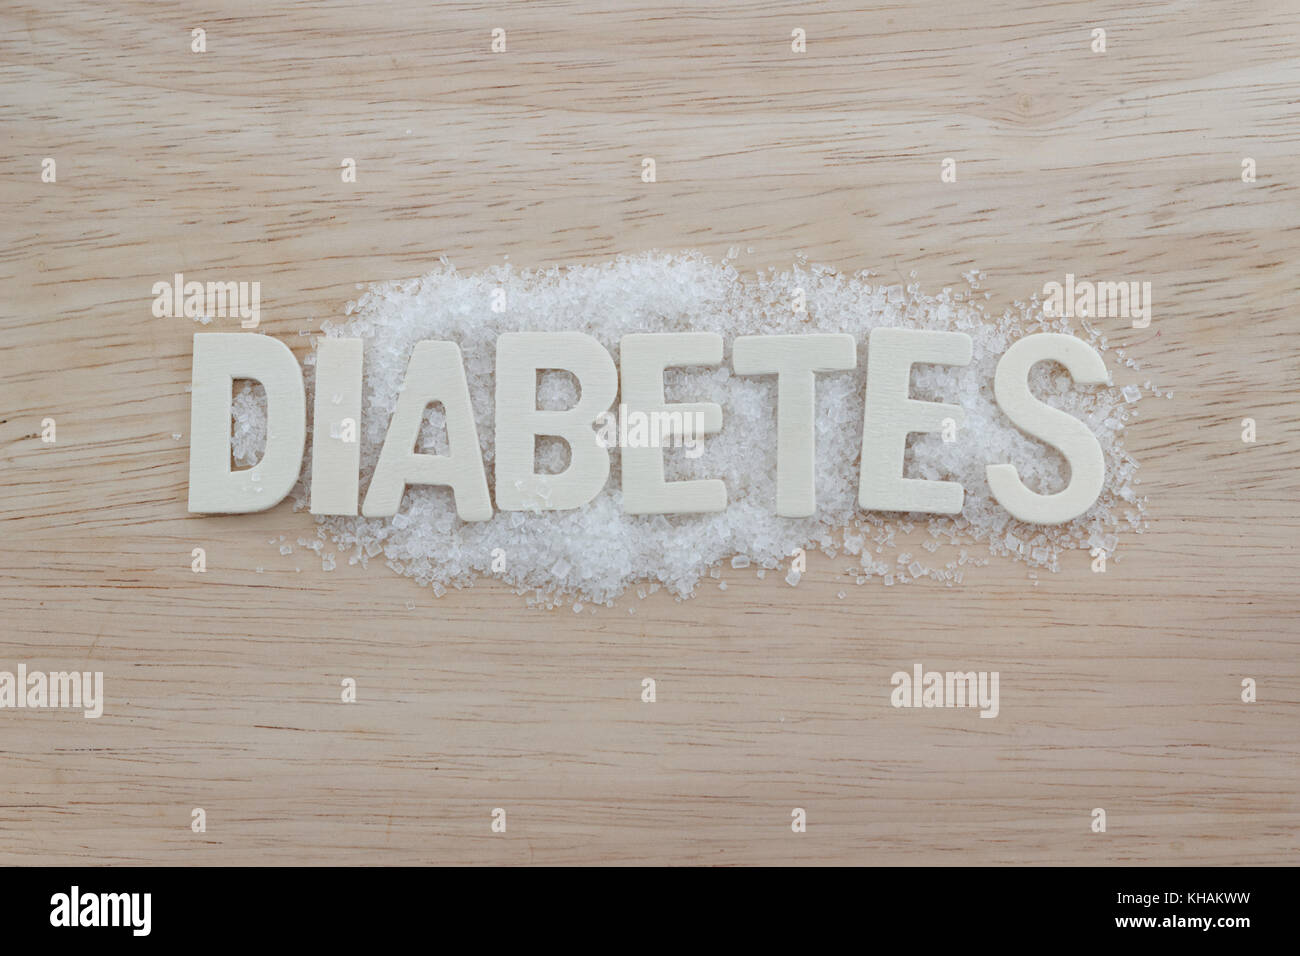 Diabetes concept. Alphabet with word DIABETES with sugar on wooden background. - Stock Image